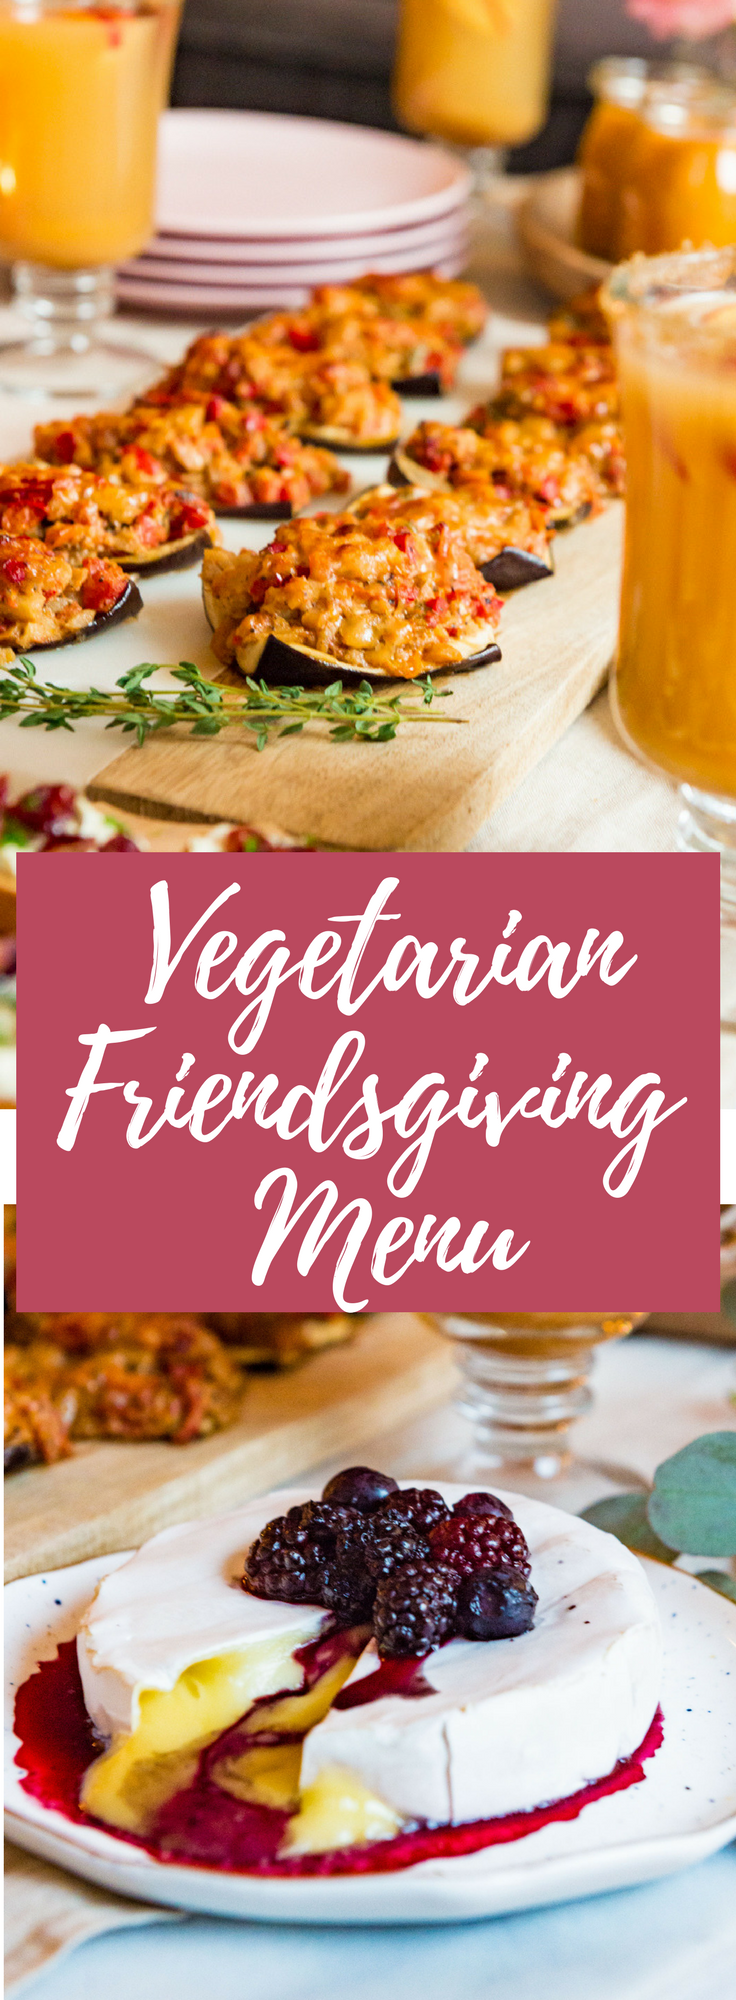 An all vegetarian, Friendsgiving themed menu and table set-up! Perfect for hosting Thanksgiving in a small space.